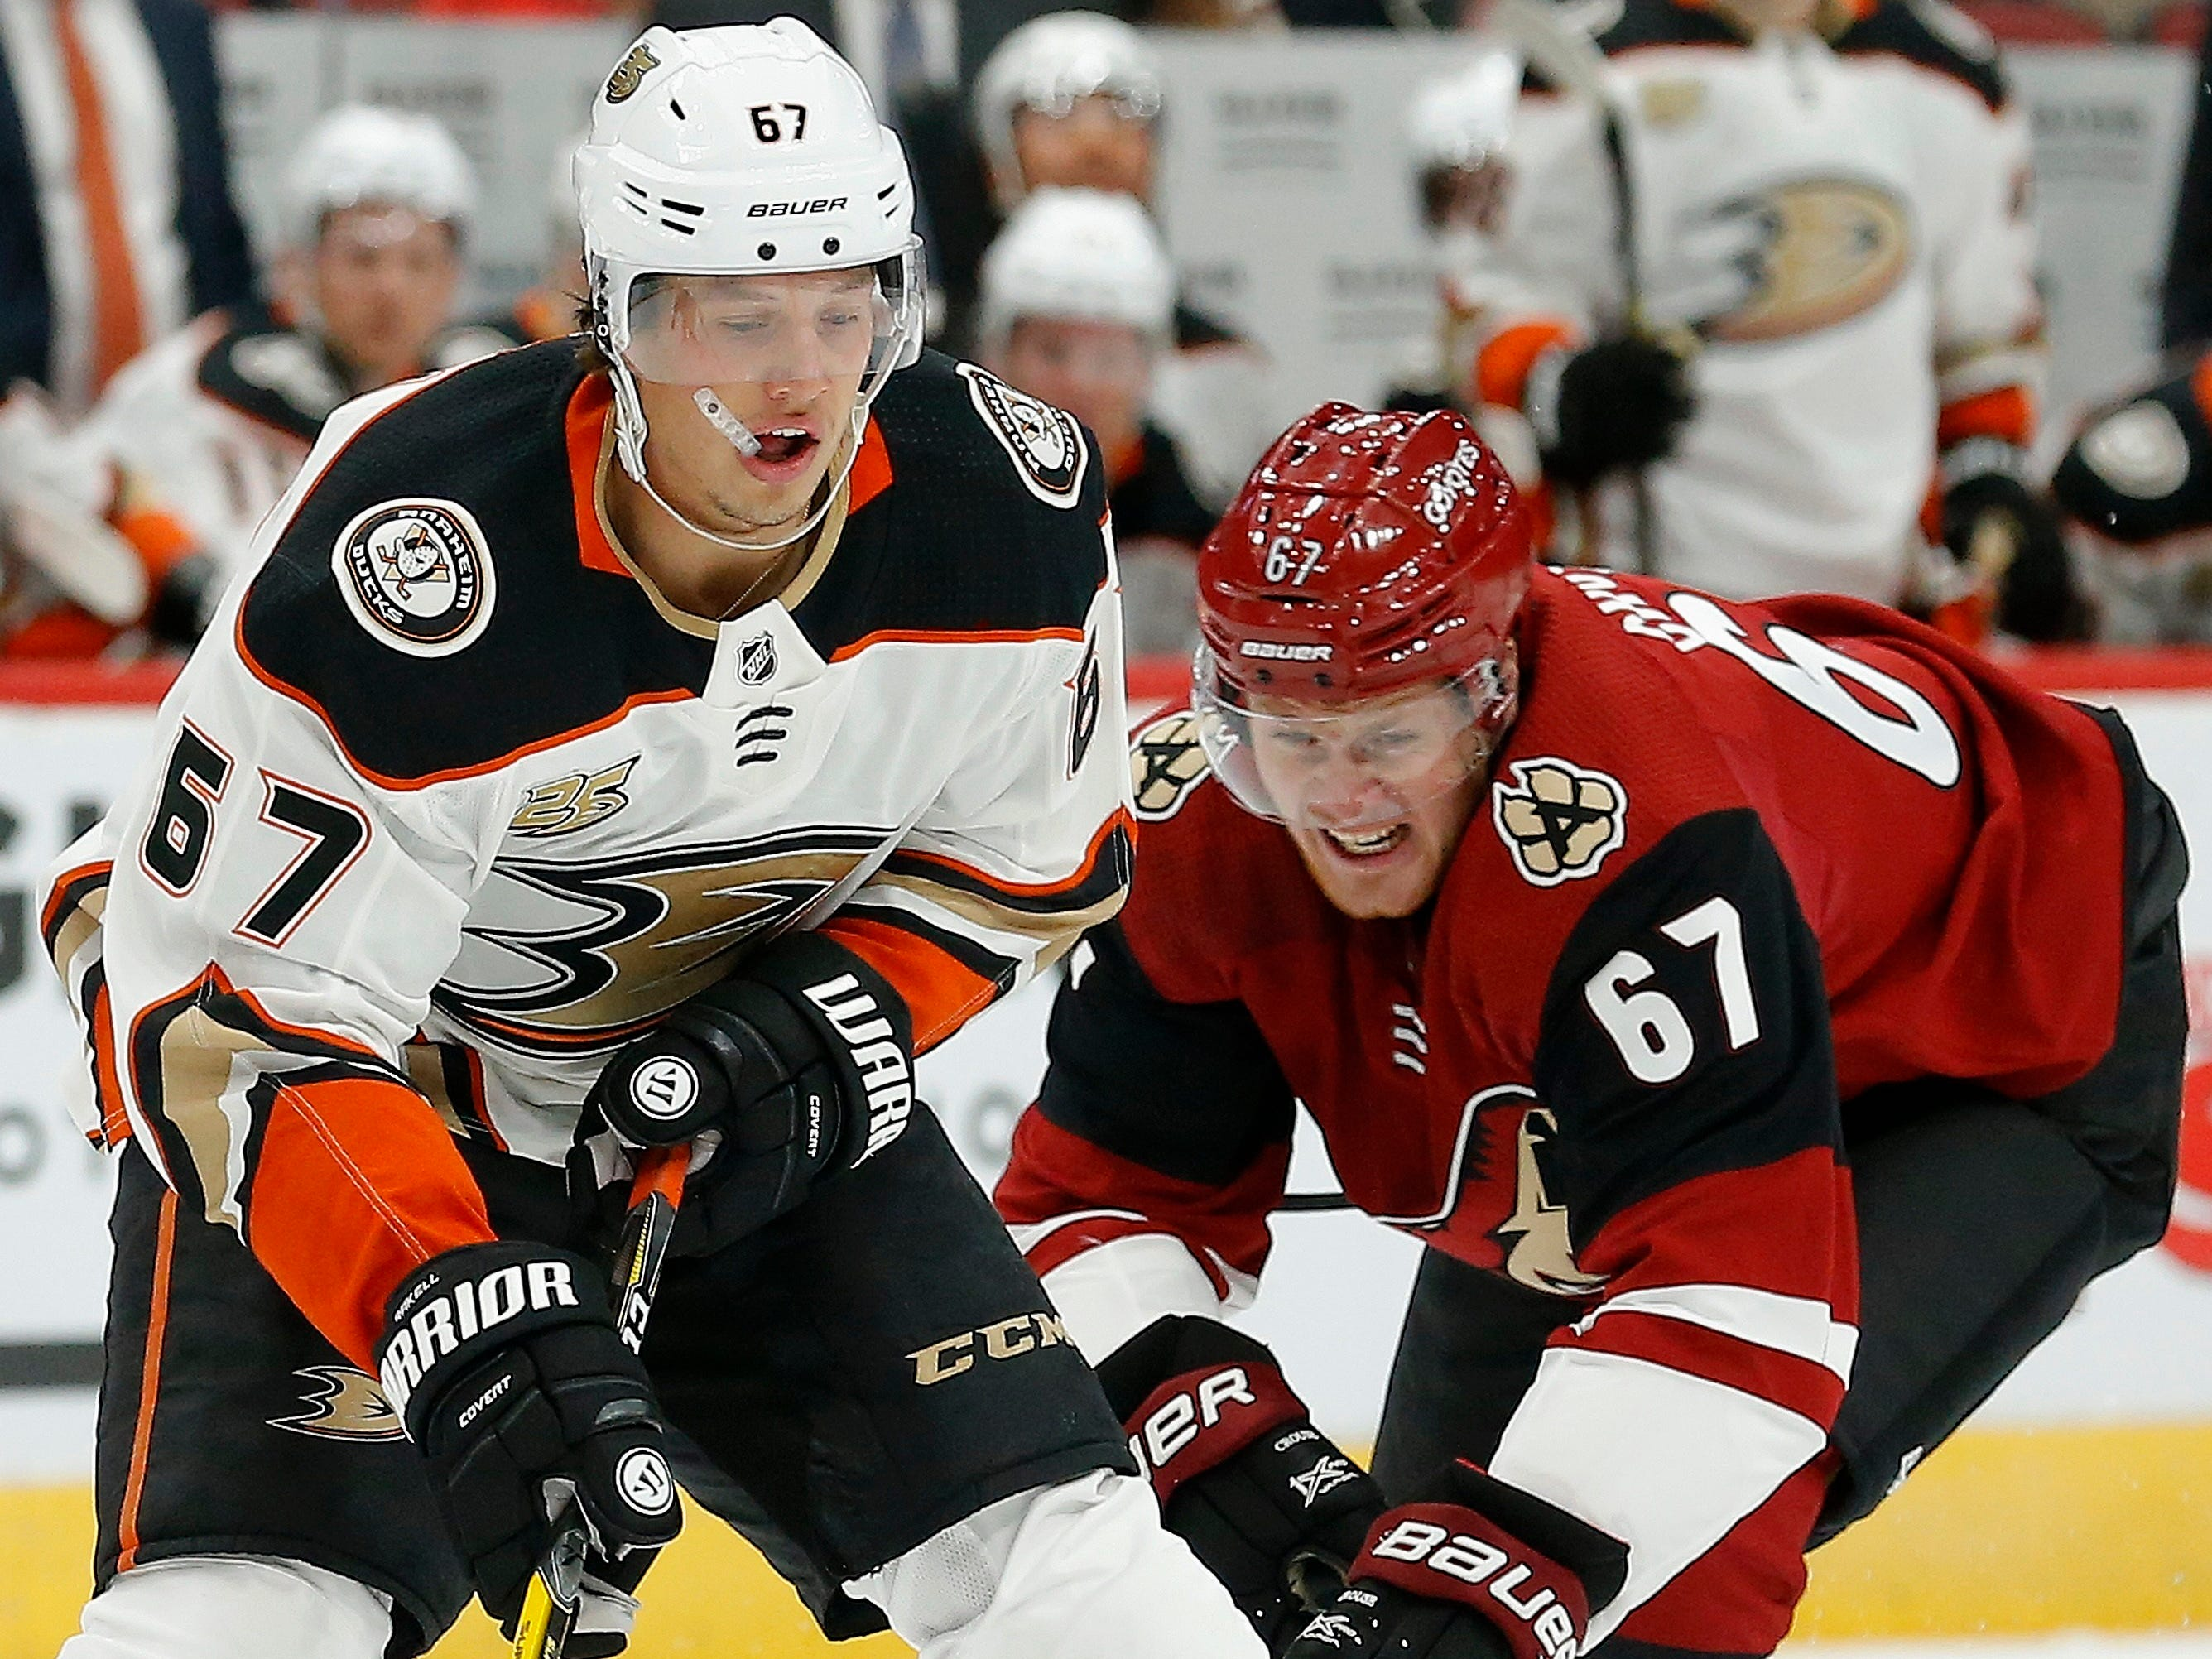 Anaheim Ducks center Rickard Rakell, left, battles with Arizona Coyotes left wing Lawson Crouse, right, for the puck during the first period of an NHL preseason hockey game Saturday, Sept. 22, 2018, in Glendale, Ariz.